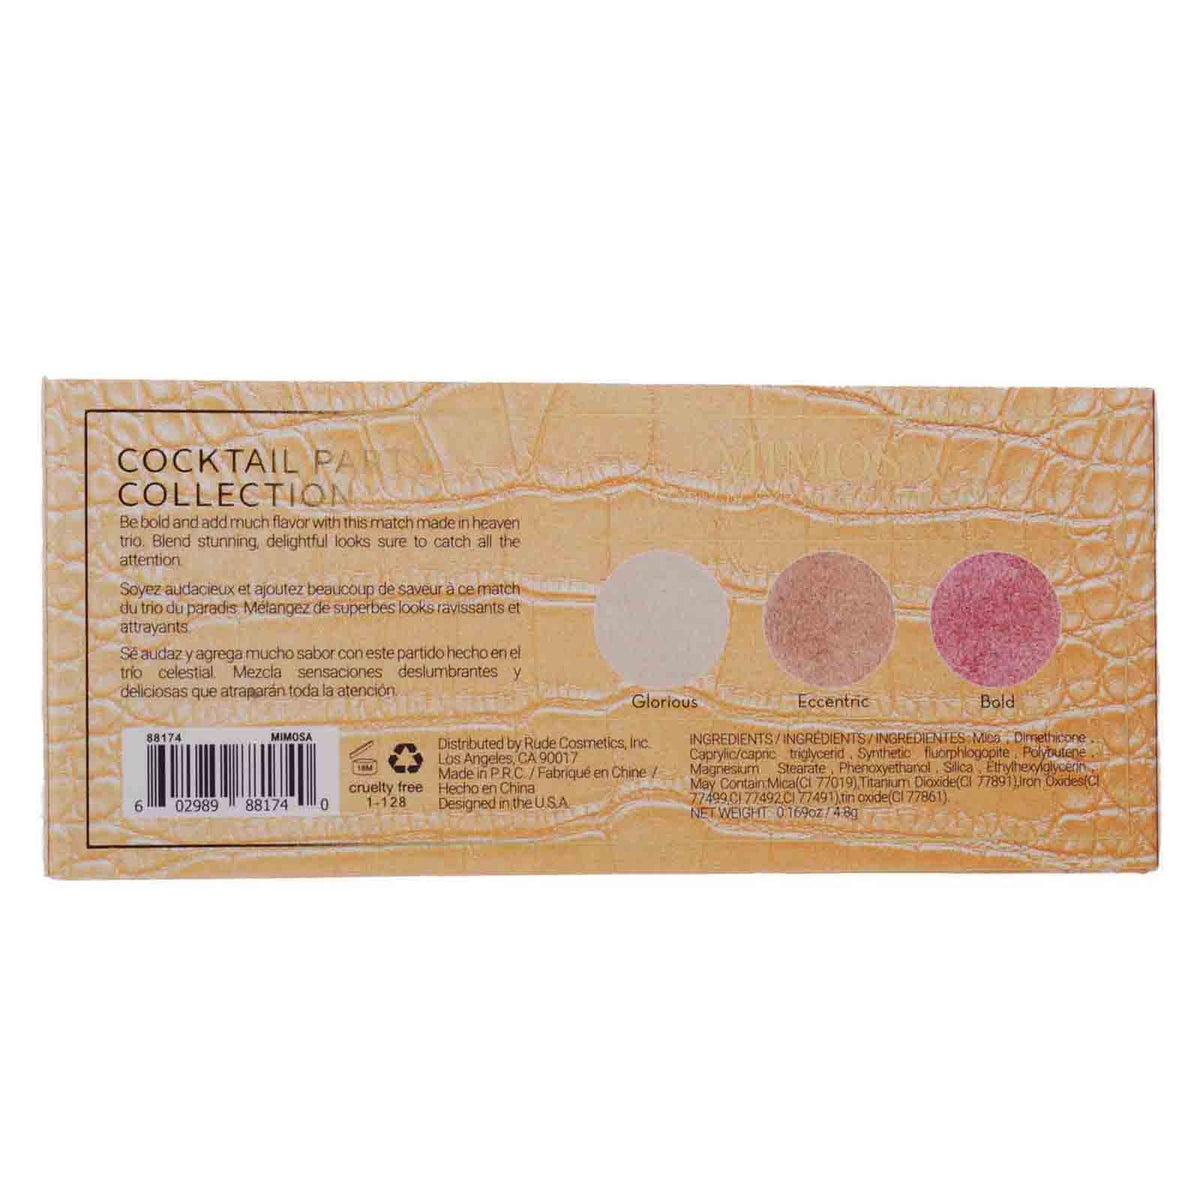 RUDE COSMETICS | Mimosa Luminous Eyeshadow Palette w/ 3 Shades (12/cs)